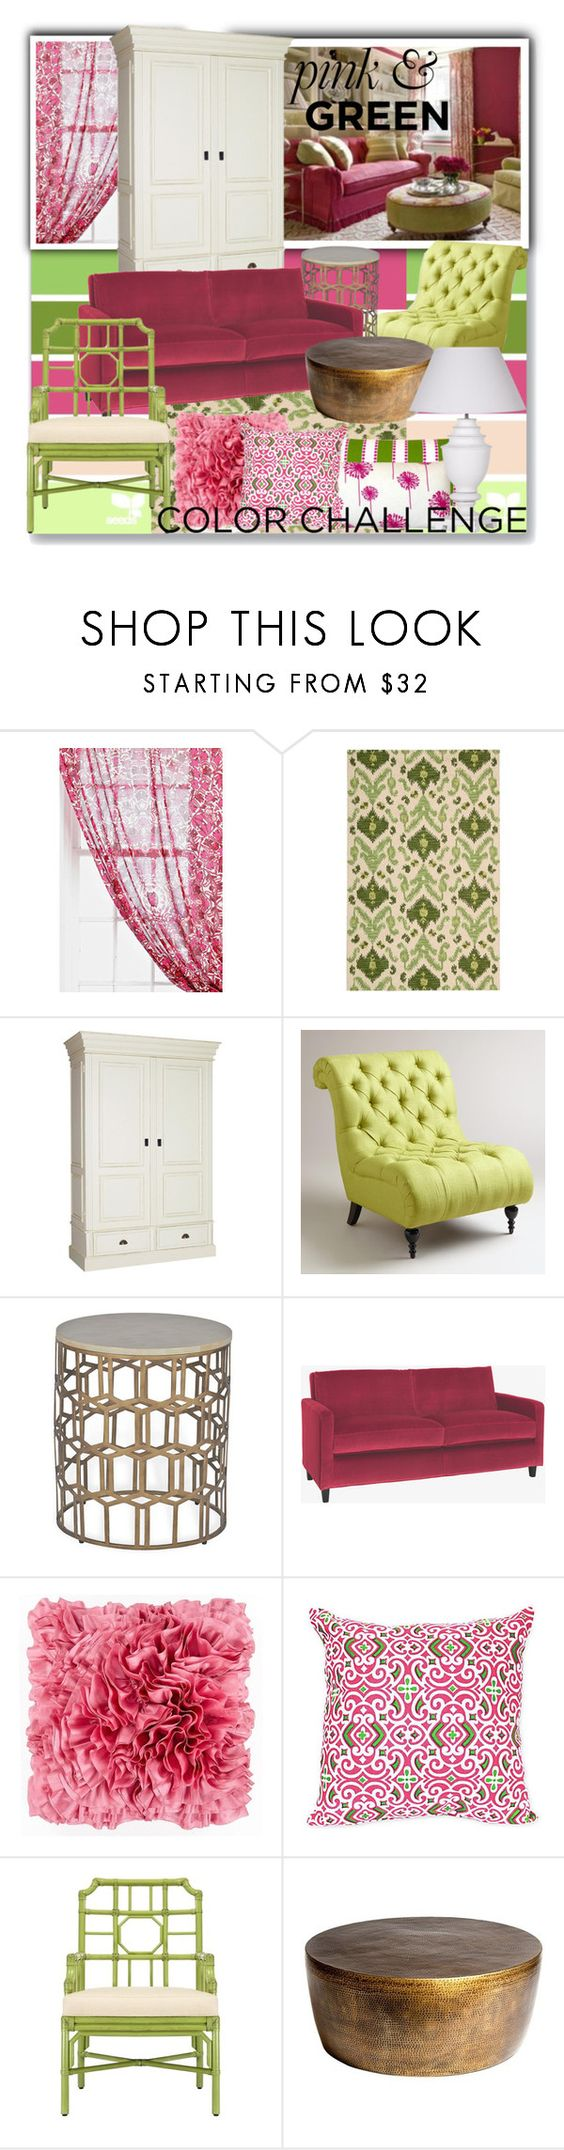 """""""Color challenge~pink & green"""" by suzanne228 ❤ liked on Polyvore featuring interior, interiors, interior design, home, home decor, interior decorating, Magical Thinking, Nourison, Cost Plus World Market and Surya"""